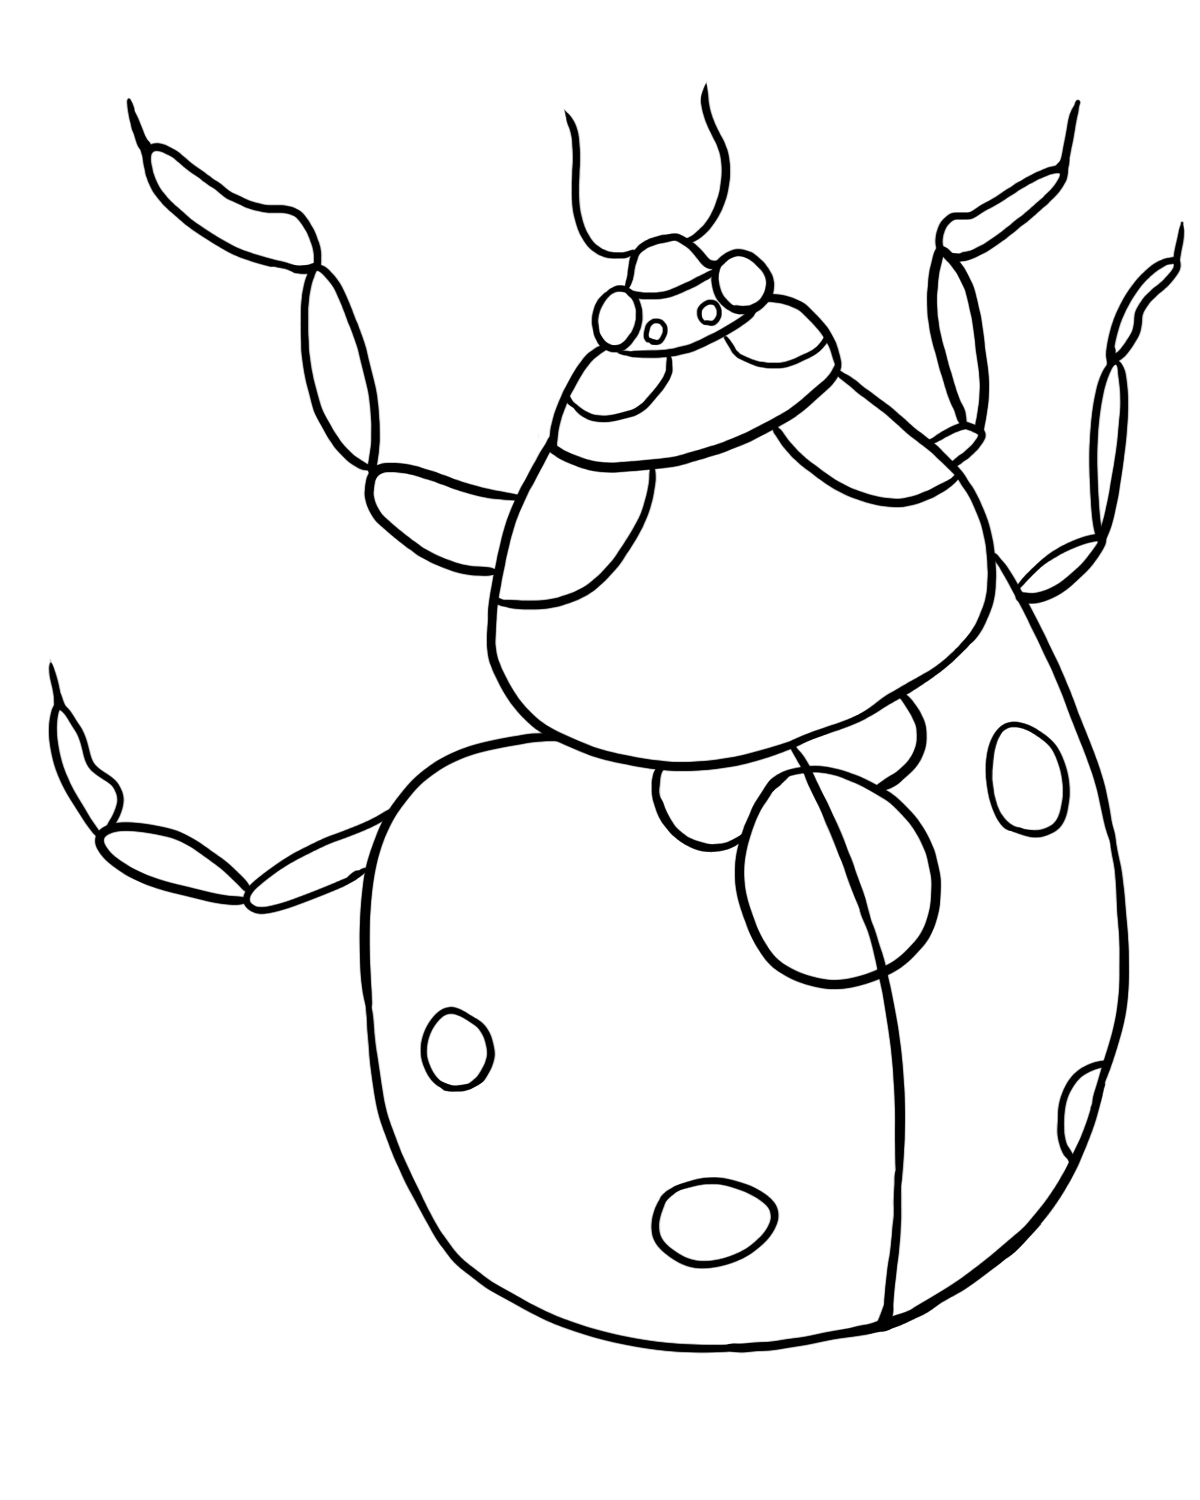 lady bug coloring page ladybug coloring pages to download and print for free coloring page bug lady